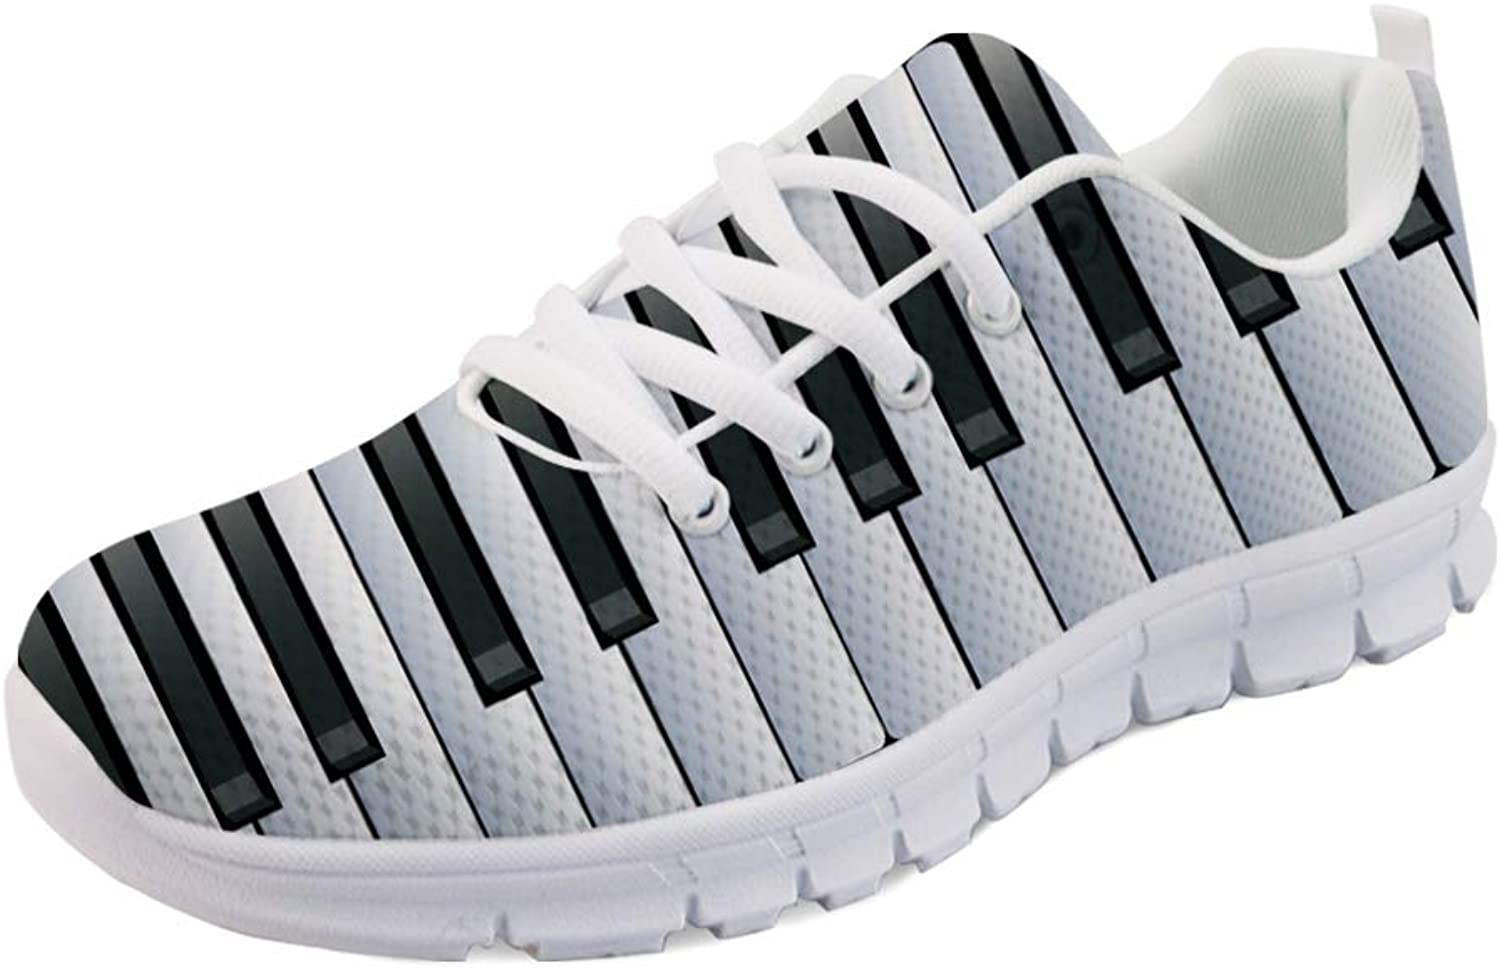 INSTANTARTS Music Note Piano Keyboard Fashion Sneaker Women Sport shoes Lace up